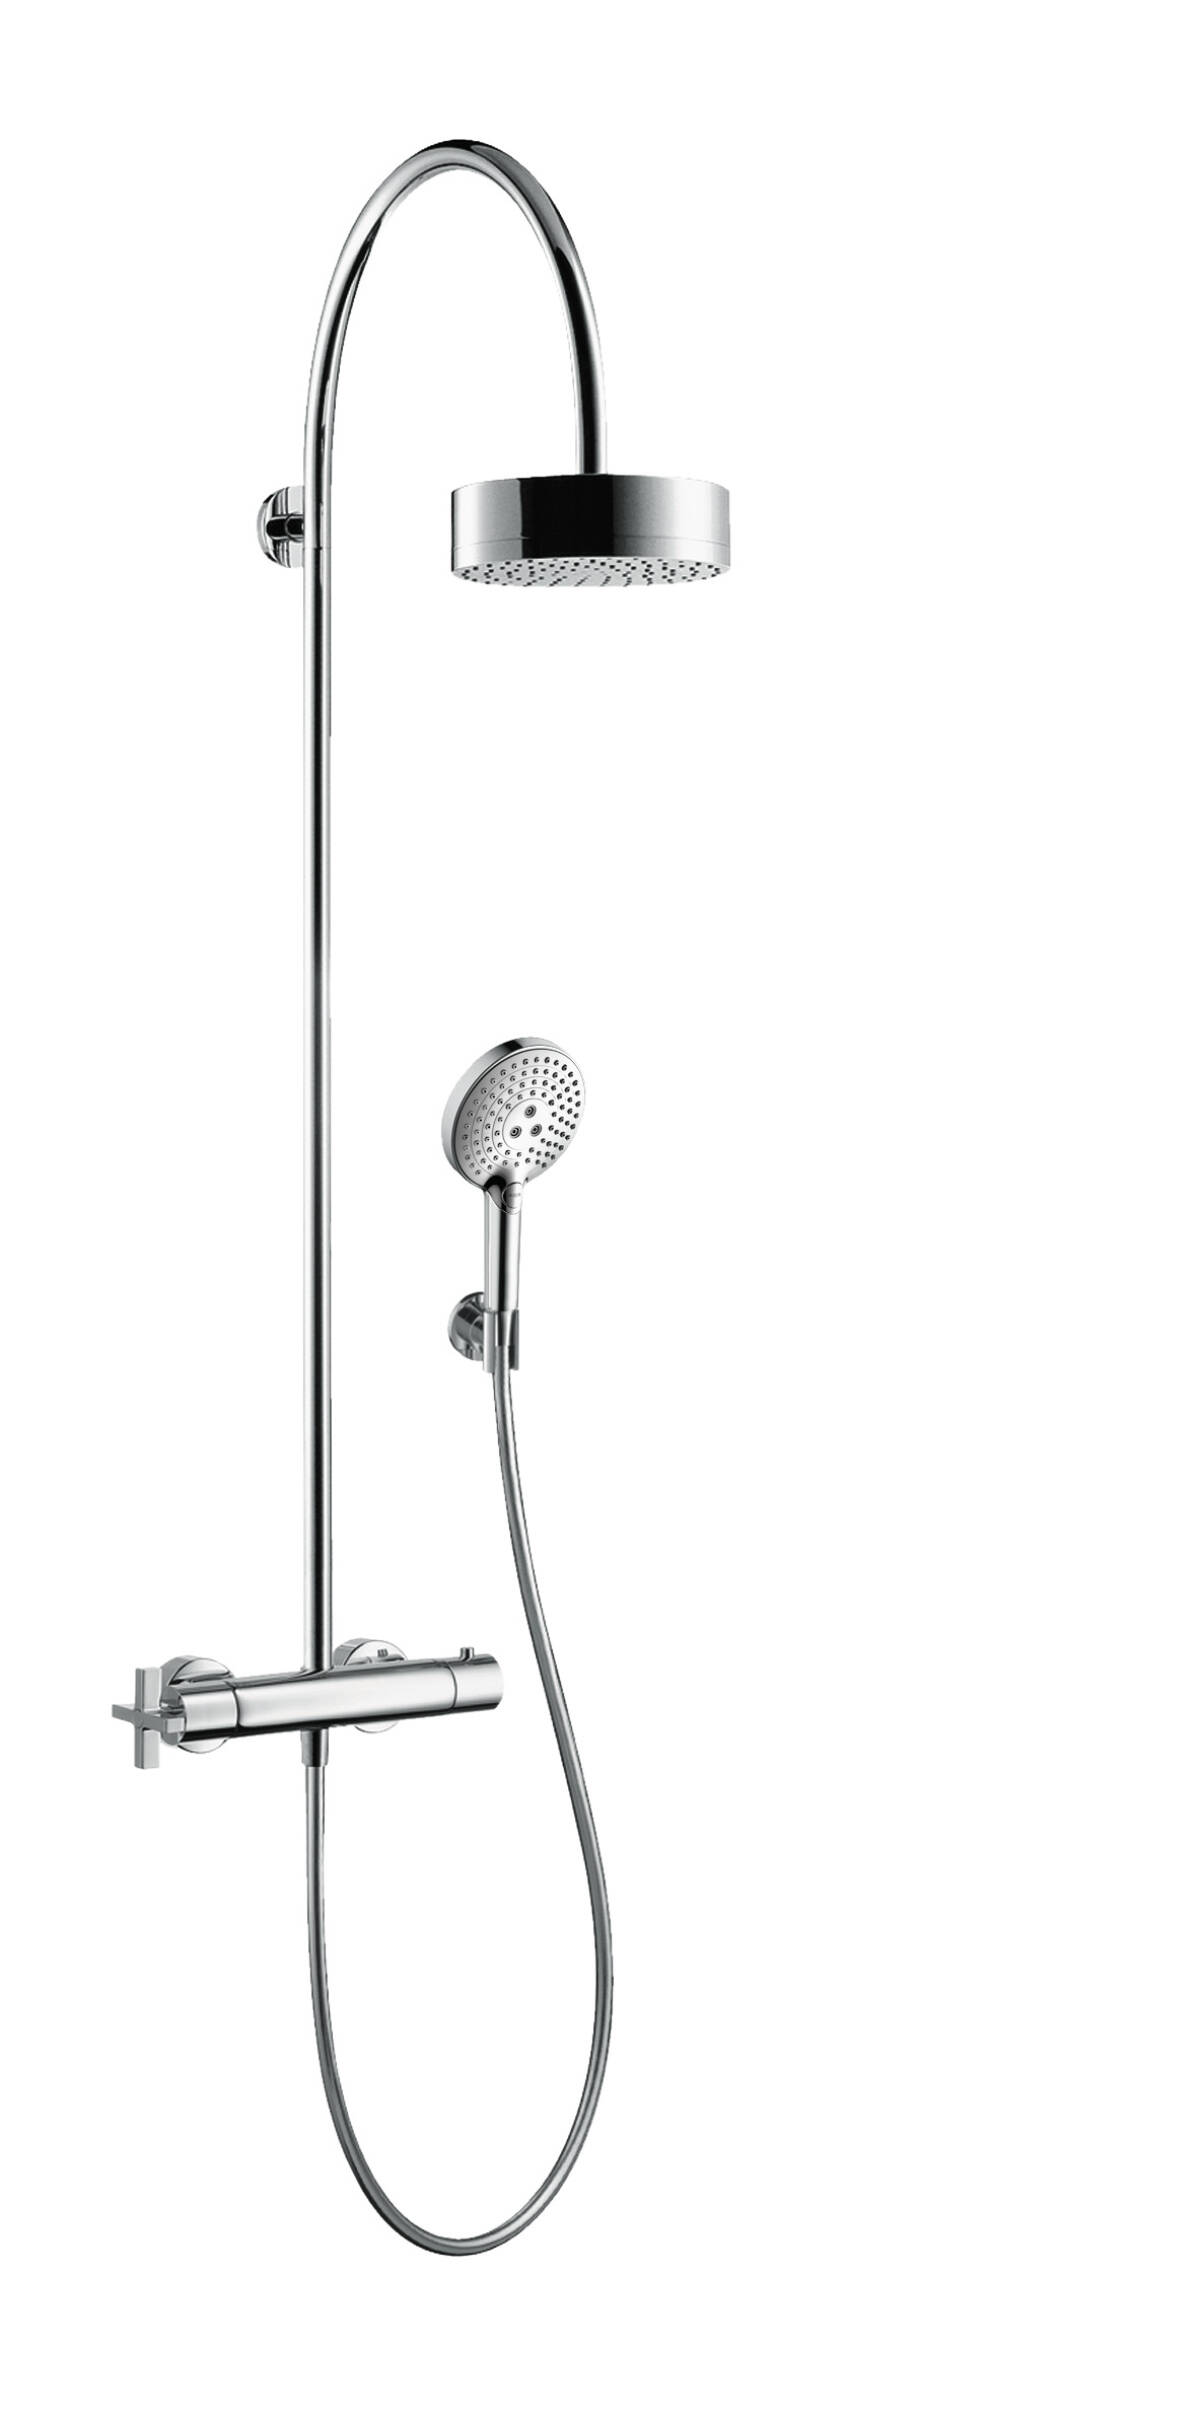 Showerpipe with thermostat and overhead shower 180 1jet, Chrome, 39670000